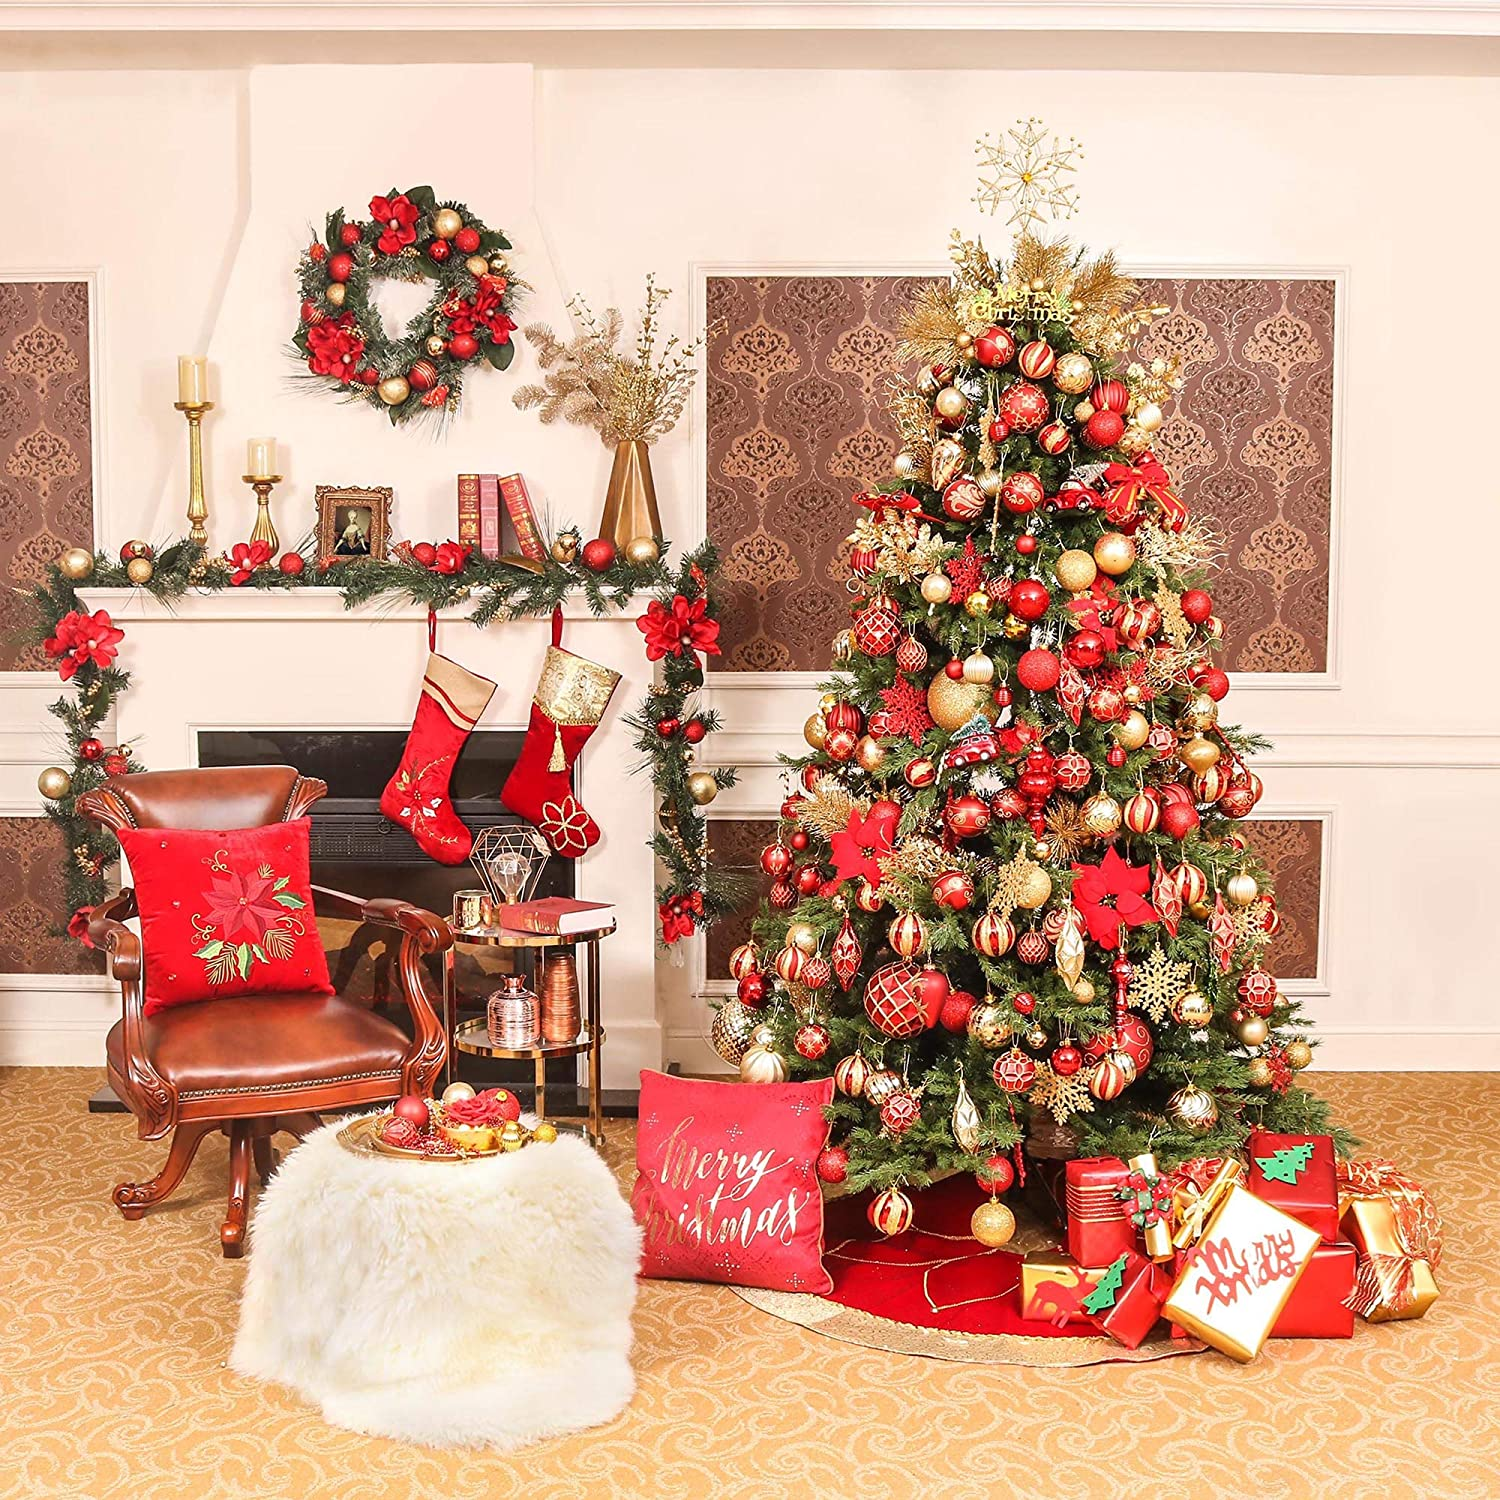 Valery Madelyn 24ct 60mm Luxury Red and Gold Shatterproof Christmas Ball Ornaments Decoration Themed with Tree Skirt Not Included